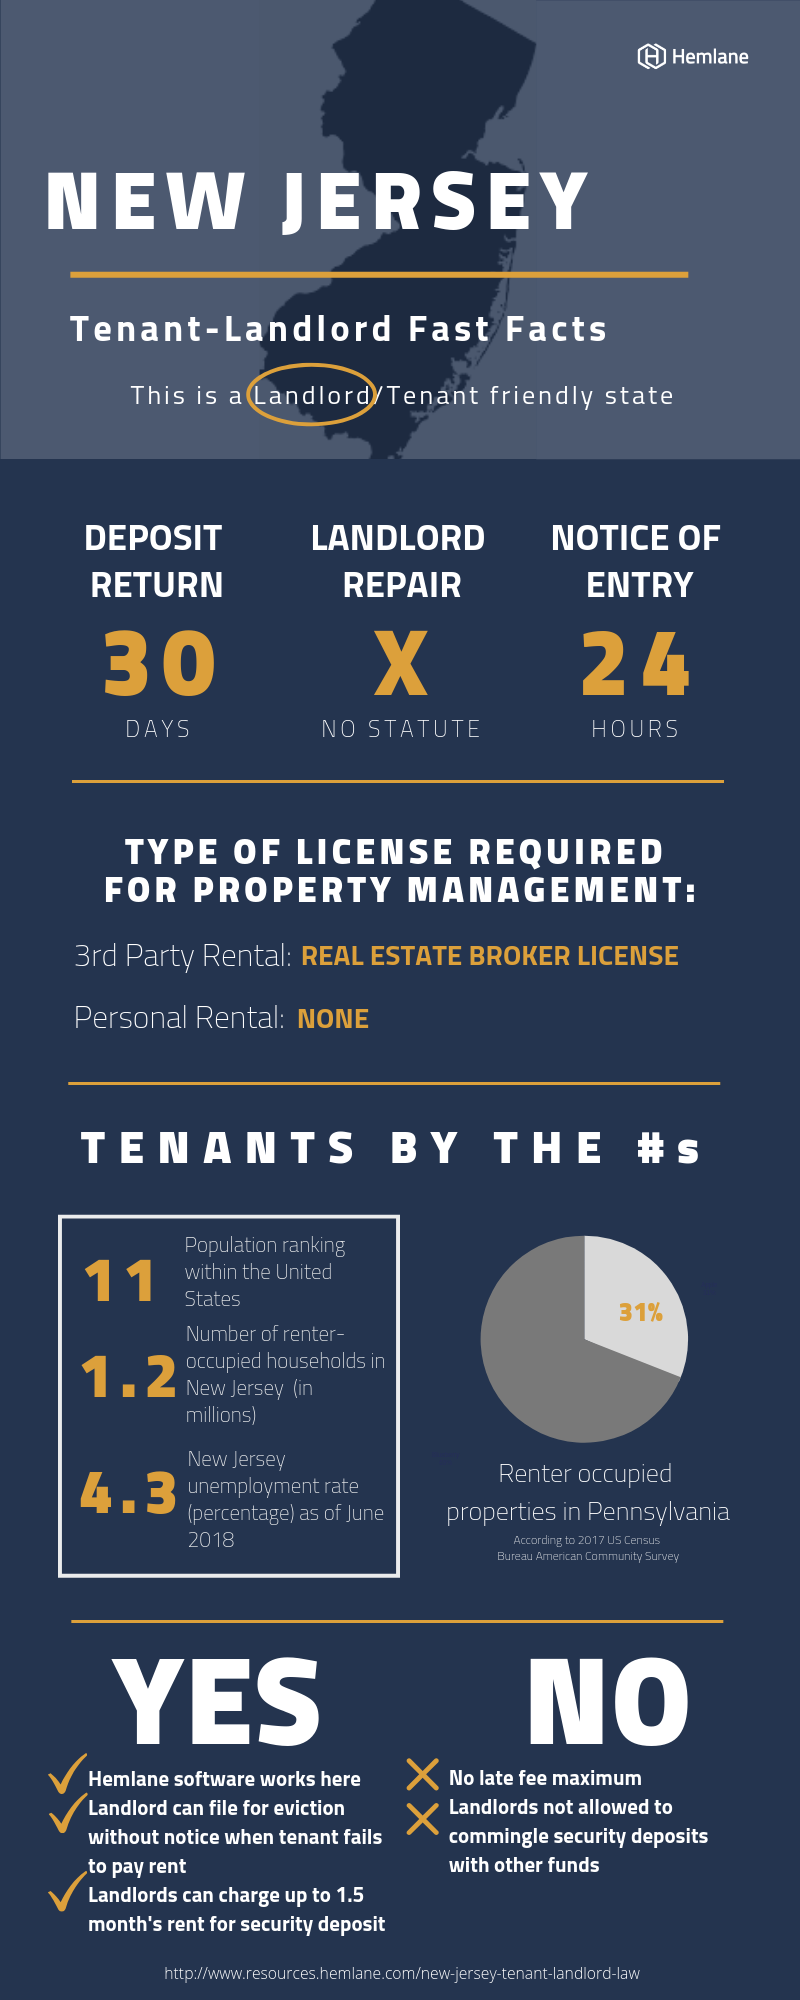 New-Jersey-Tenant-Landlord-Law-Fast-Facts